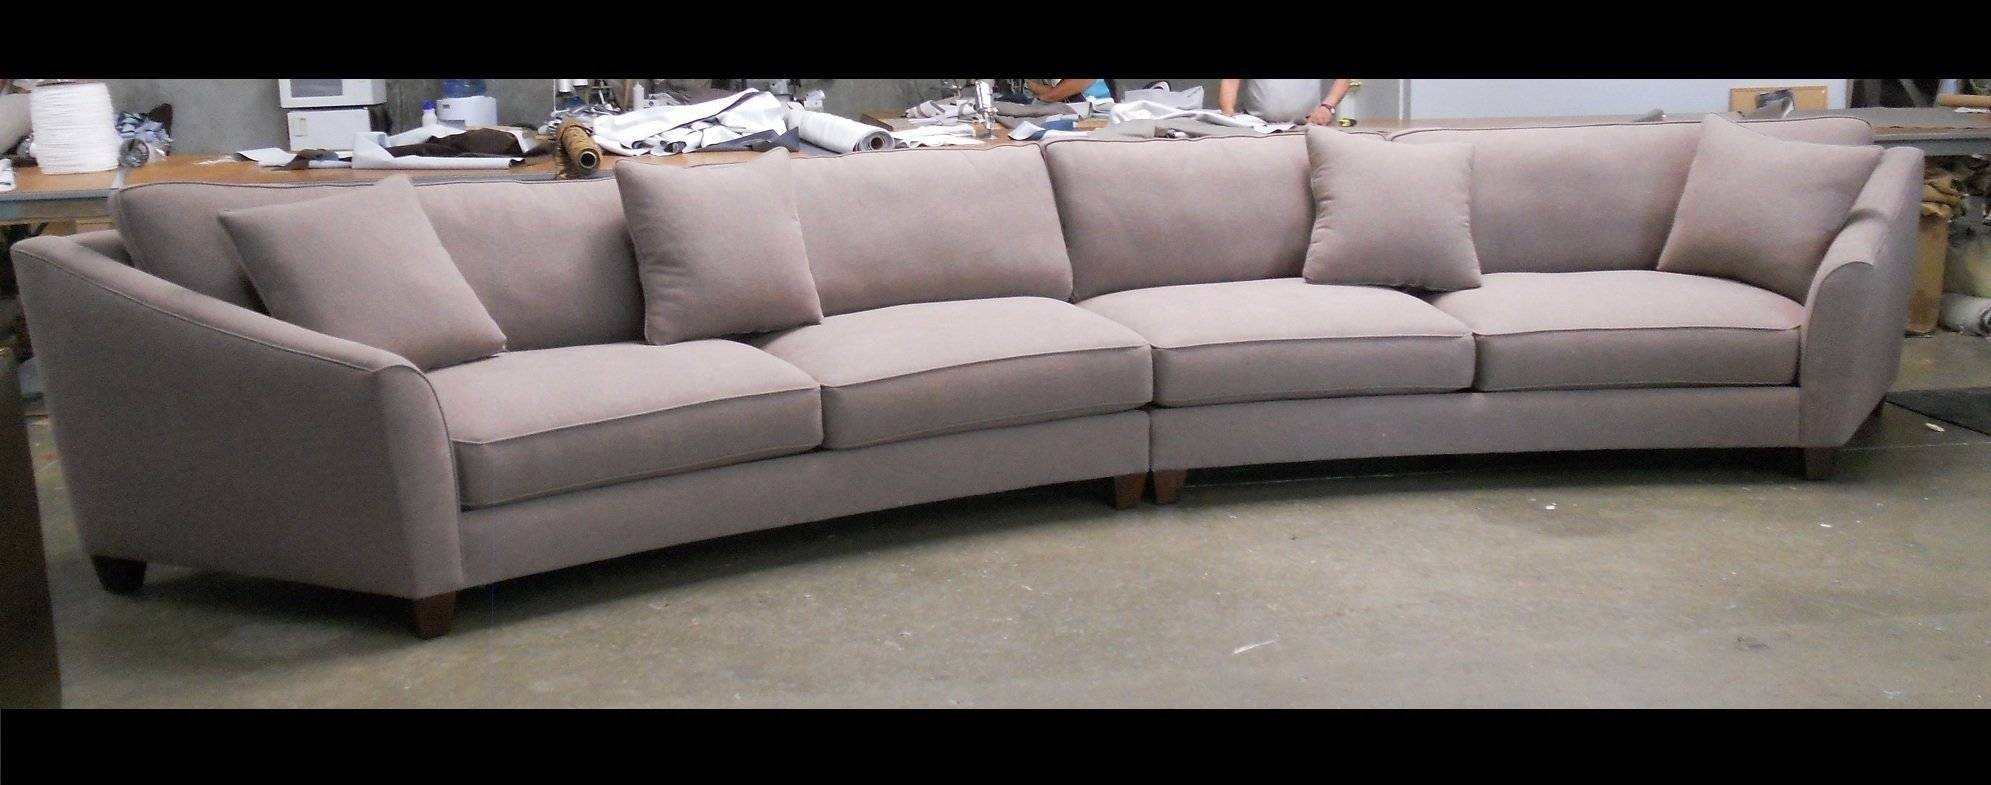 Furniture Circular Sectional Sofa Sale With Curved Couches intended for Semi Round Sectional Sofas ( : round sectional sofa - Sectionals, Sofas & Couches